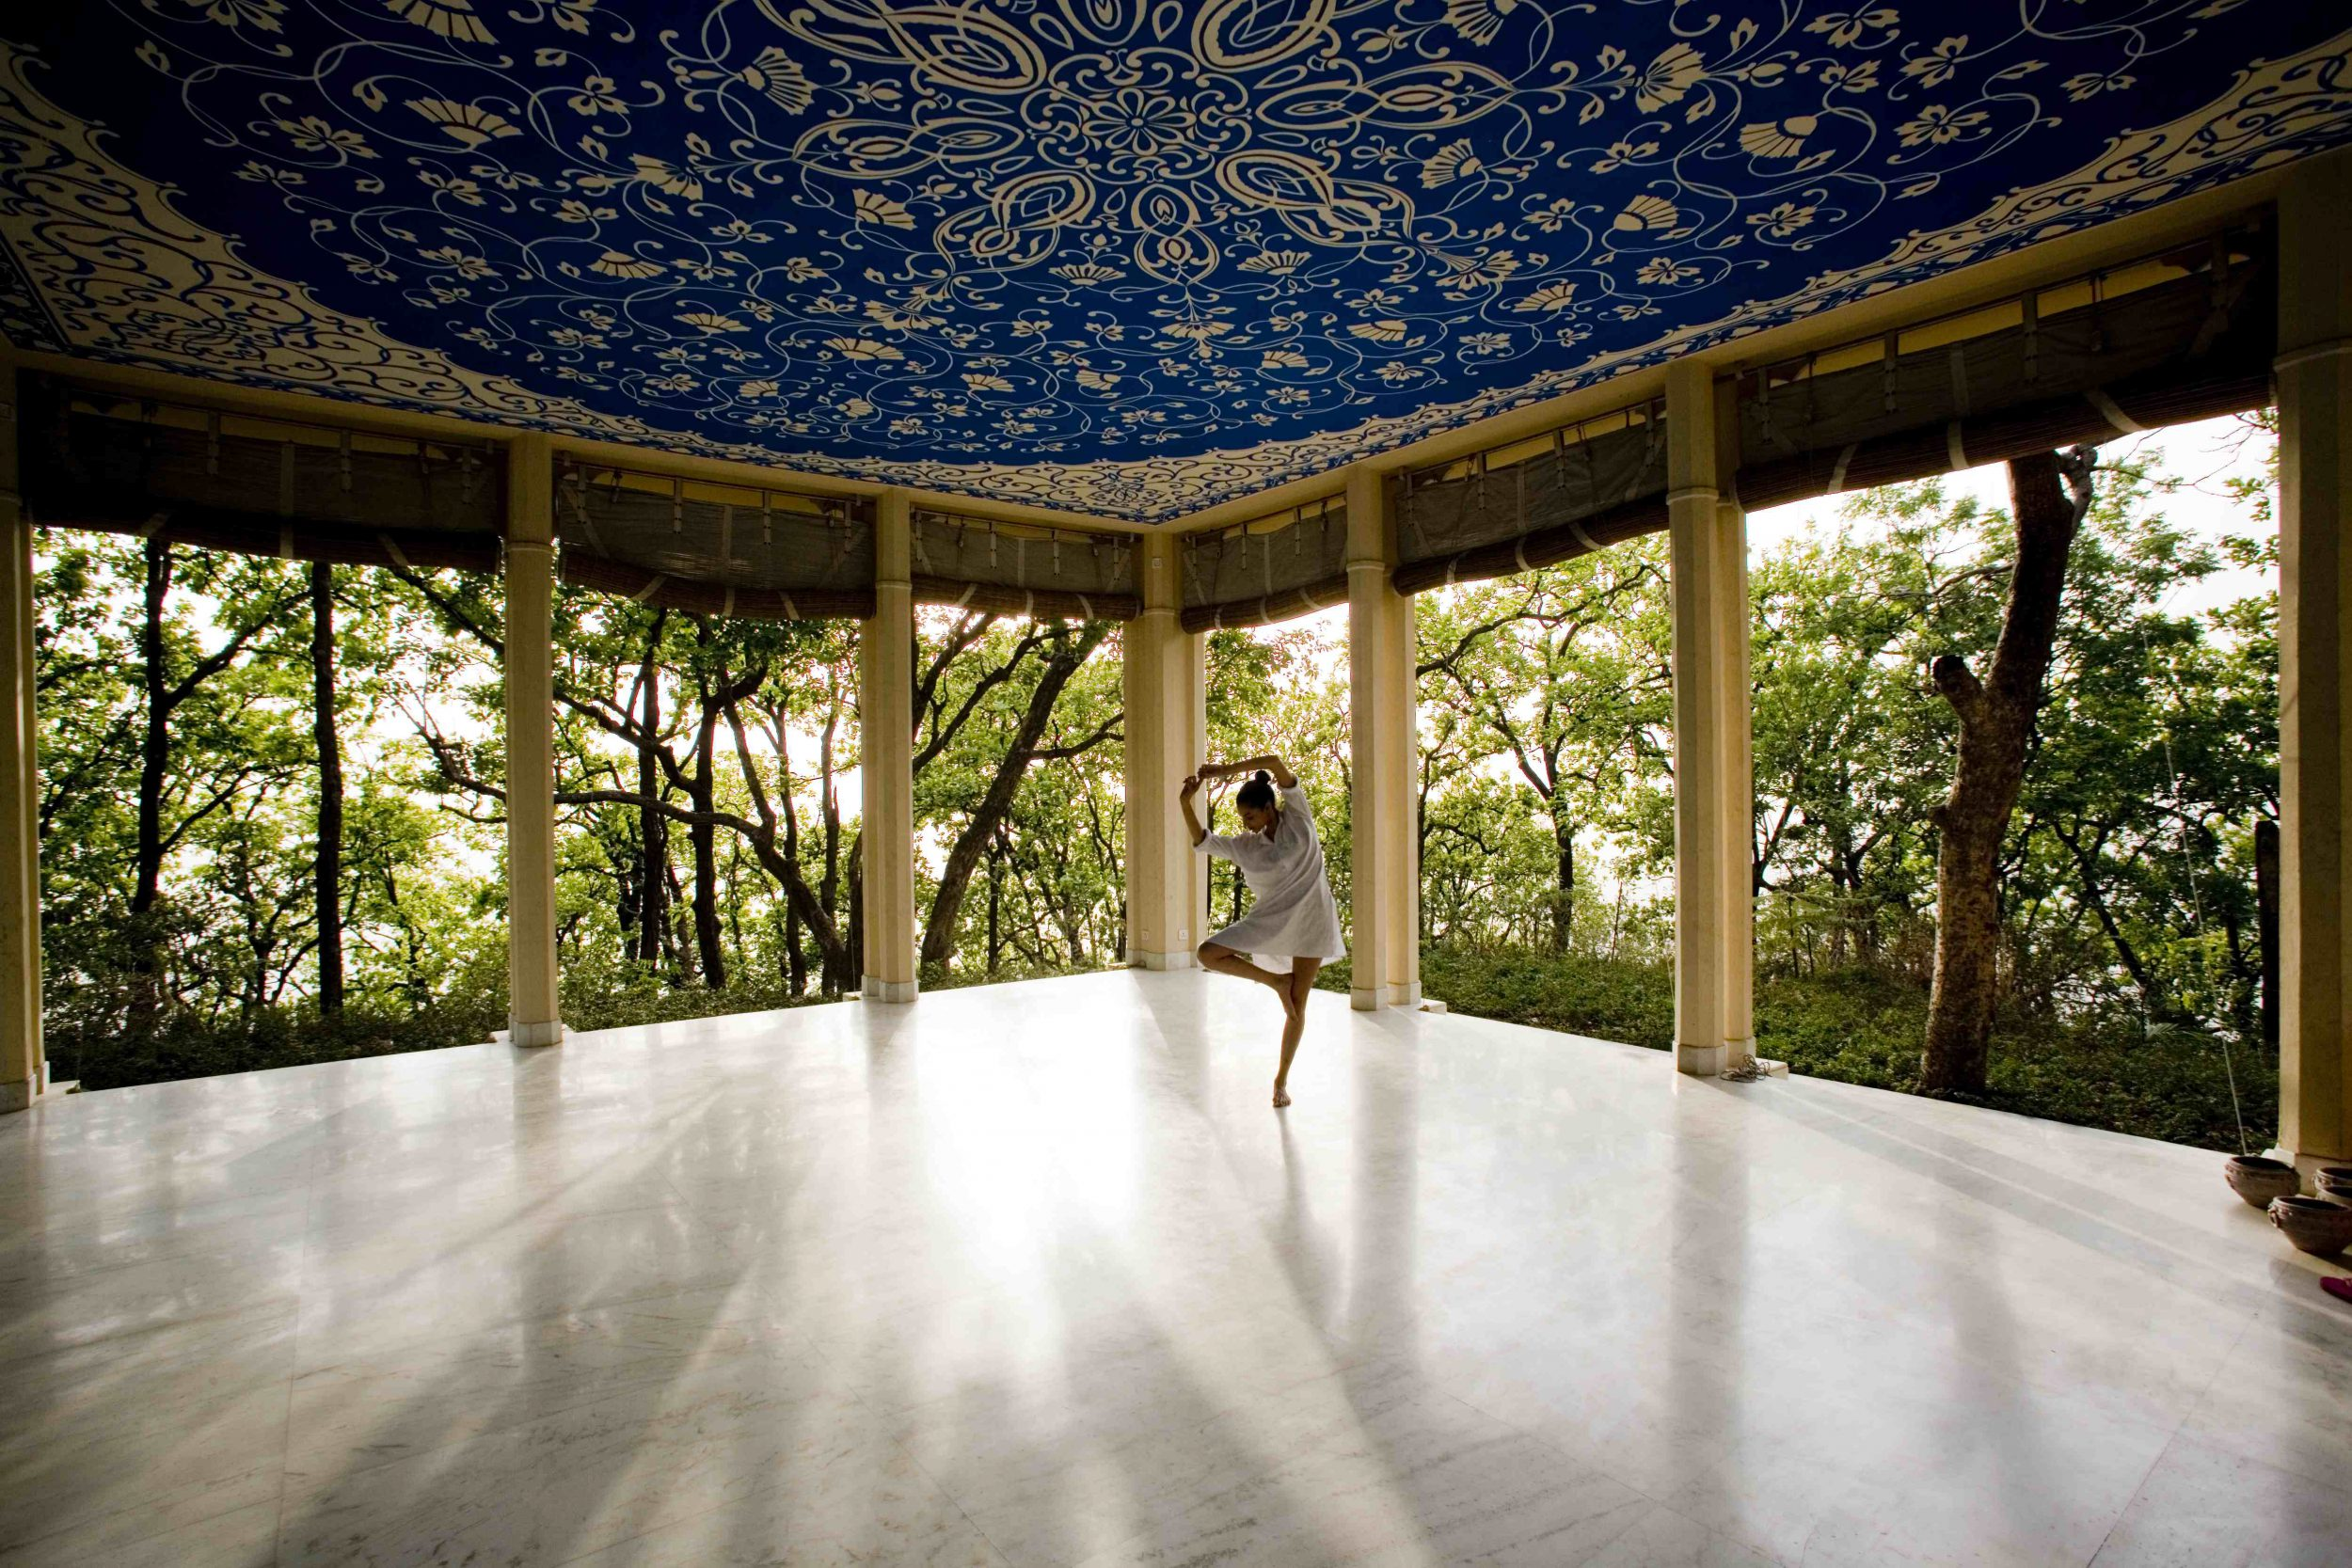 Girl in a standing yoga pose in a pillared pavilion with a blue and cream tapestry roof with the forest visible beyond, Ananda Spa, India